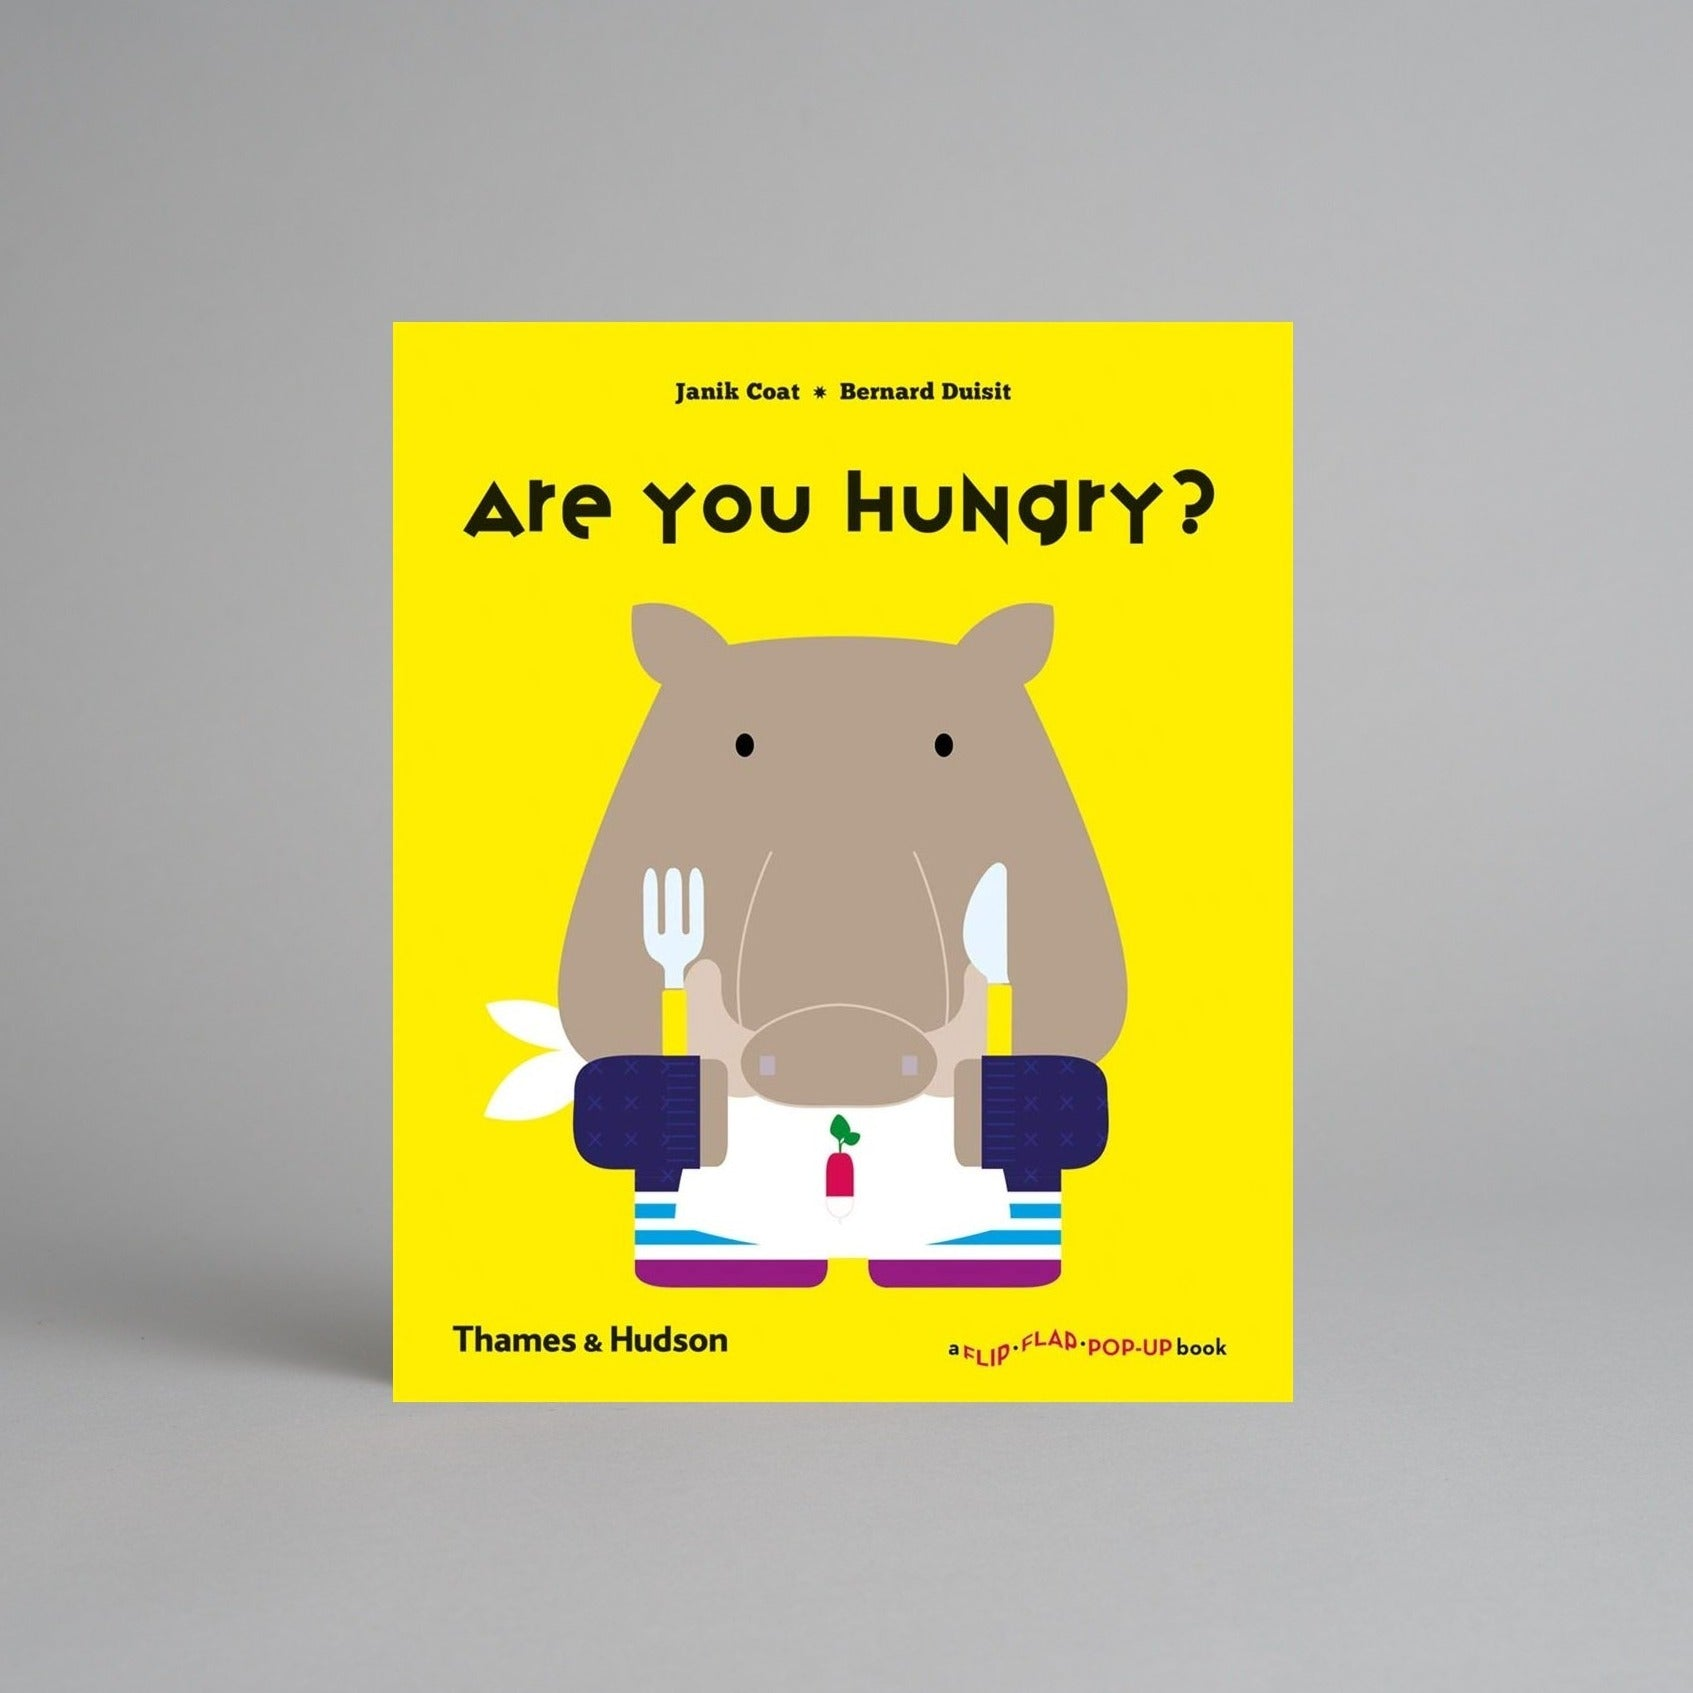 Are You Hungry? by Janik Coat and Bernard Duisit